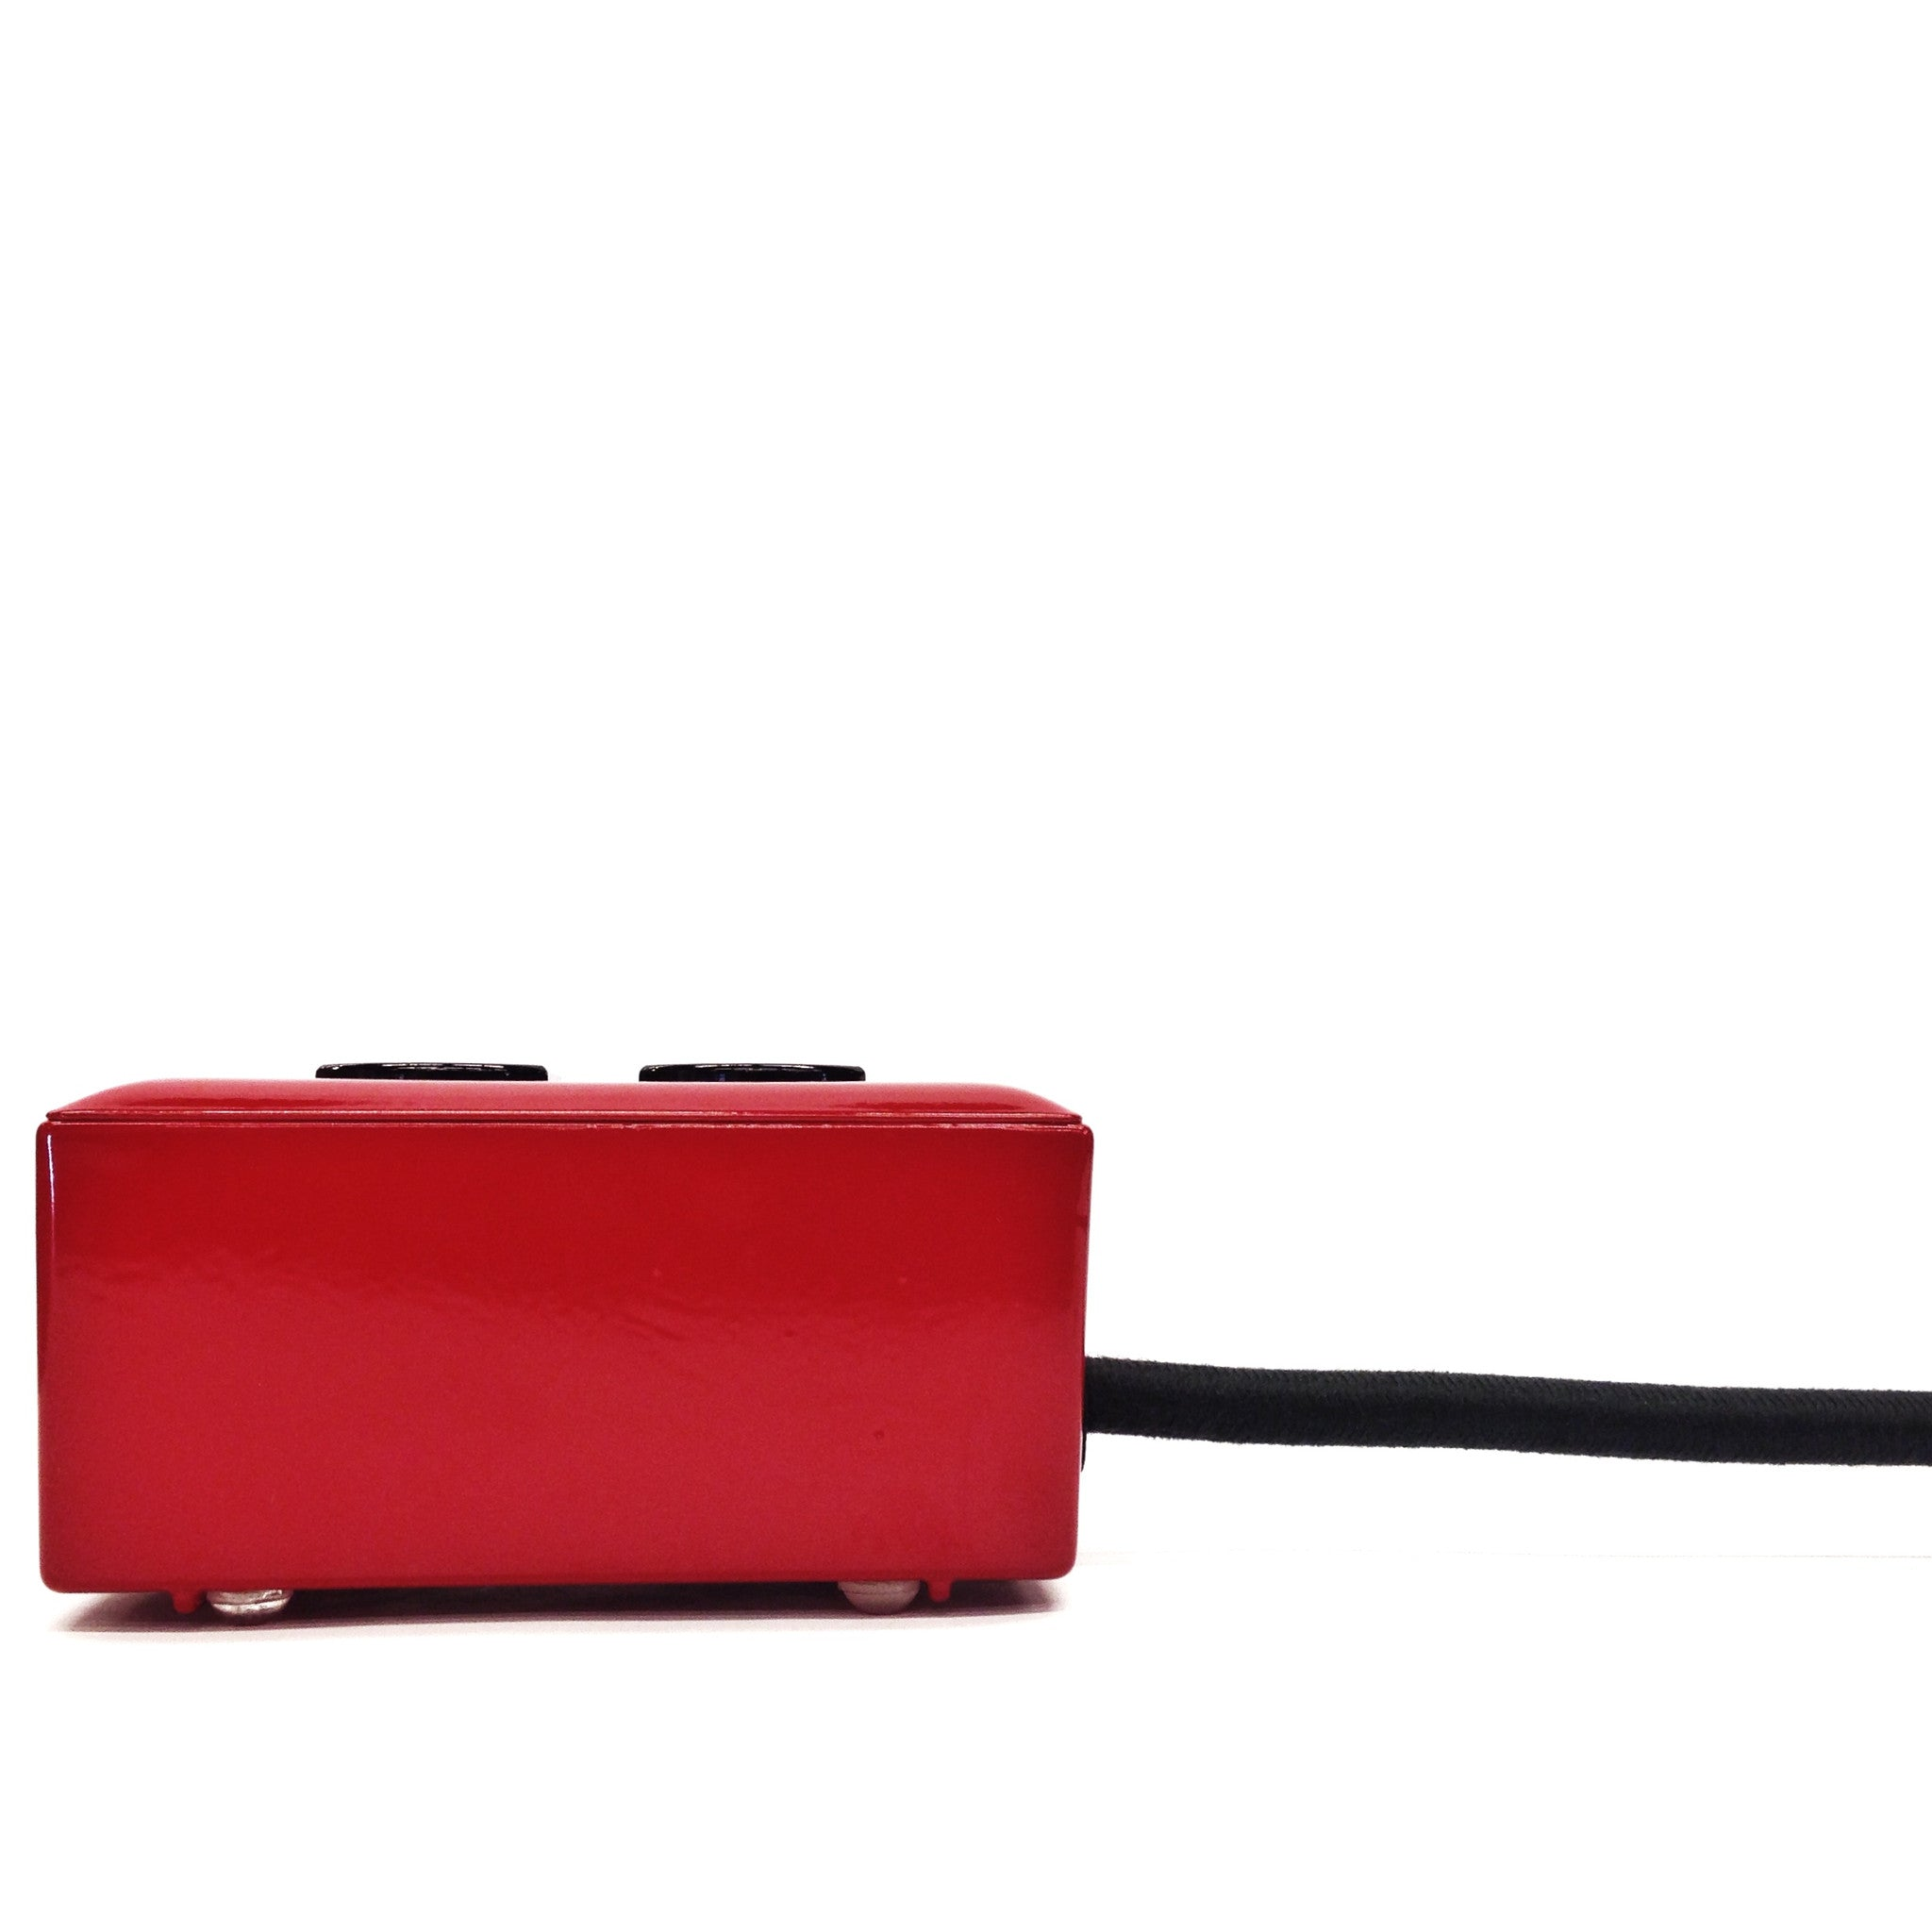 Extō Charcoal Red - A Modern Dual-Tamper-Resistant Outlet, 13-AMP Extension Cord